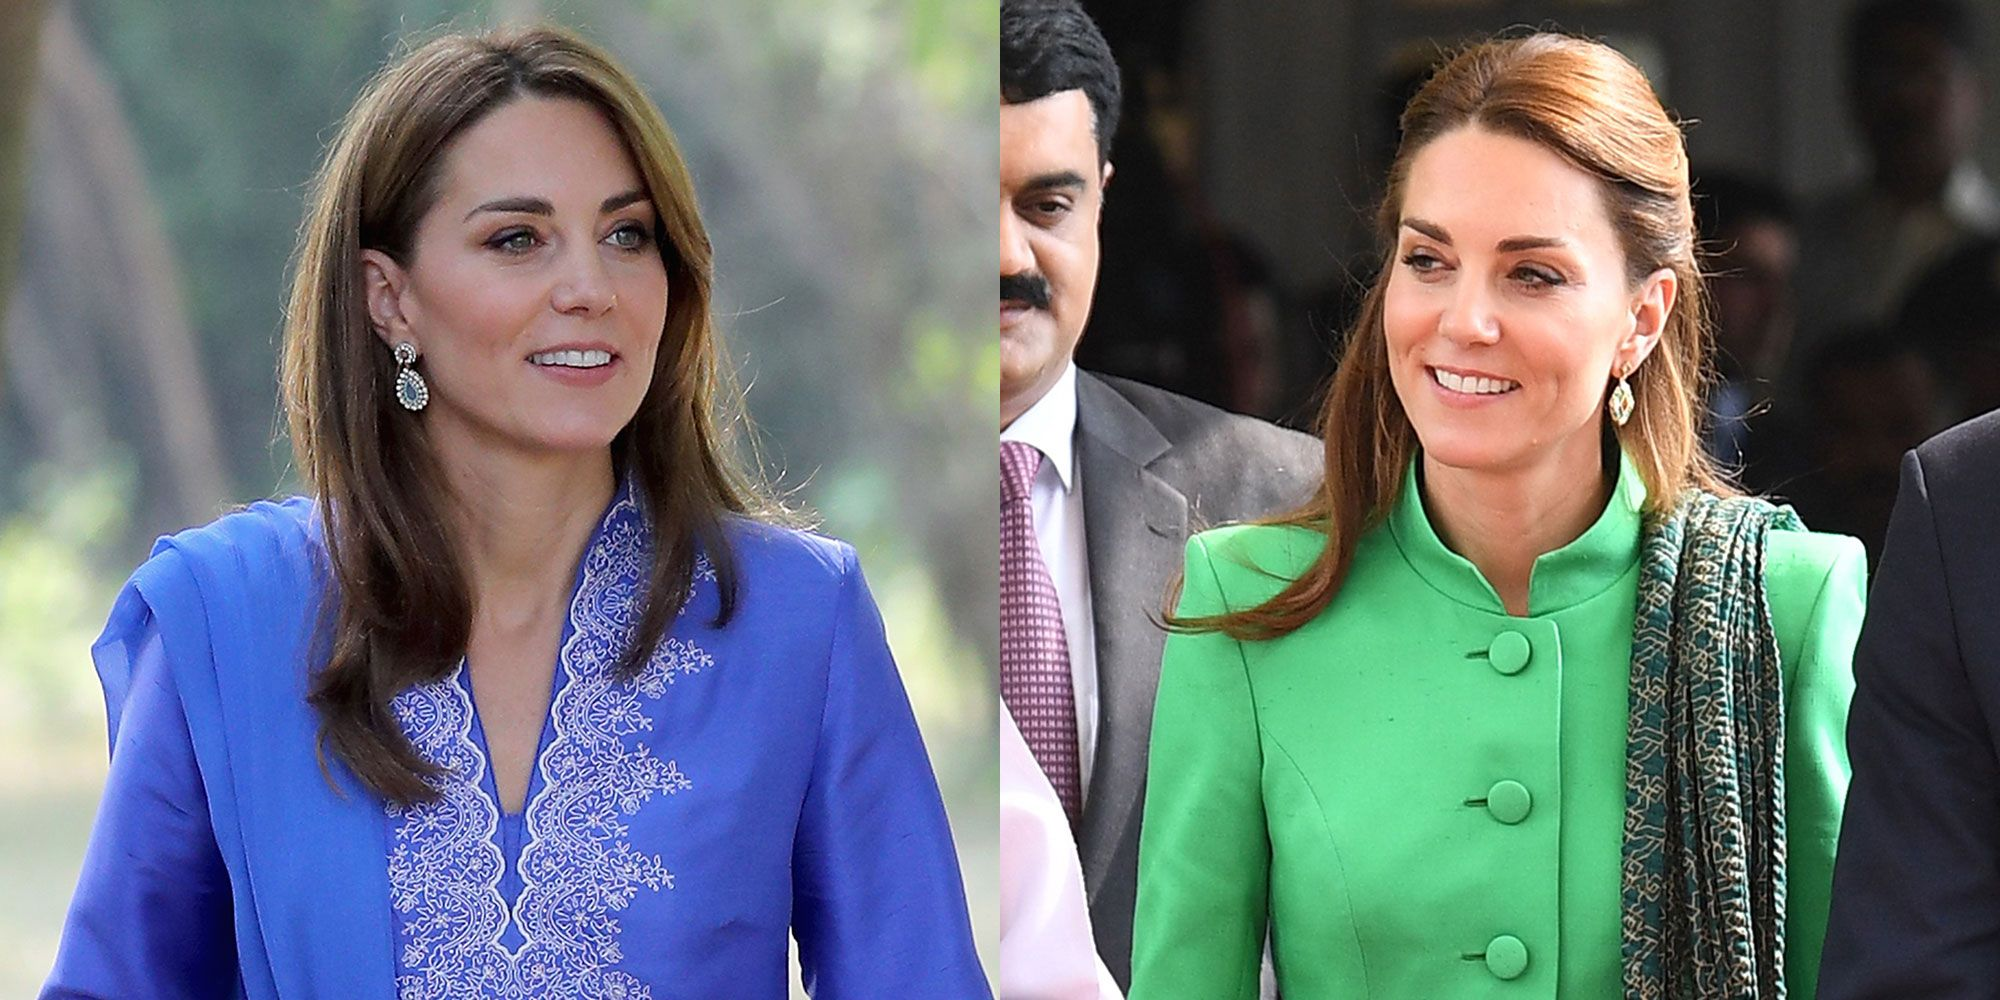 Kate Middleton Wore Two New Looks, a Blue Kurta and Green Tunic, for Day 2 of Her Pakistan Tour